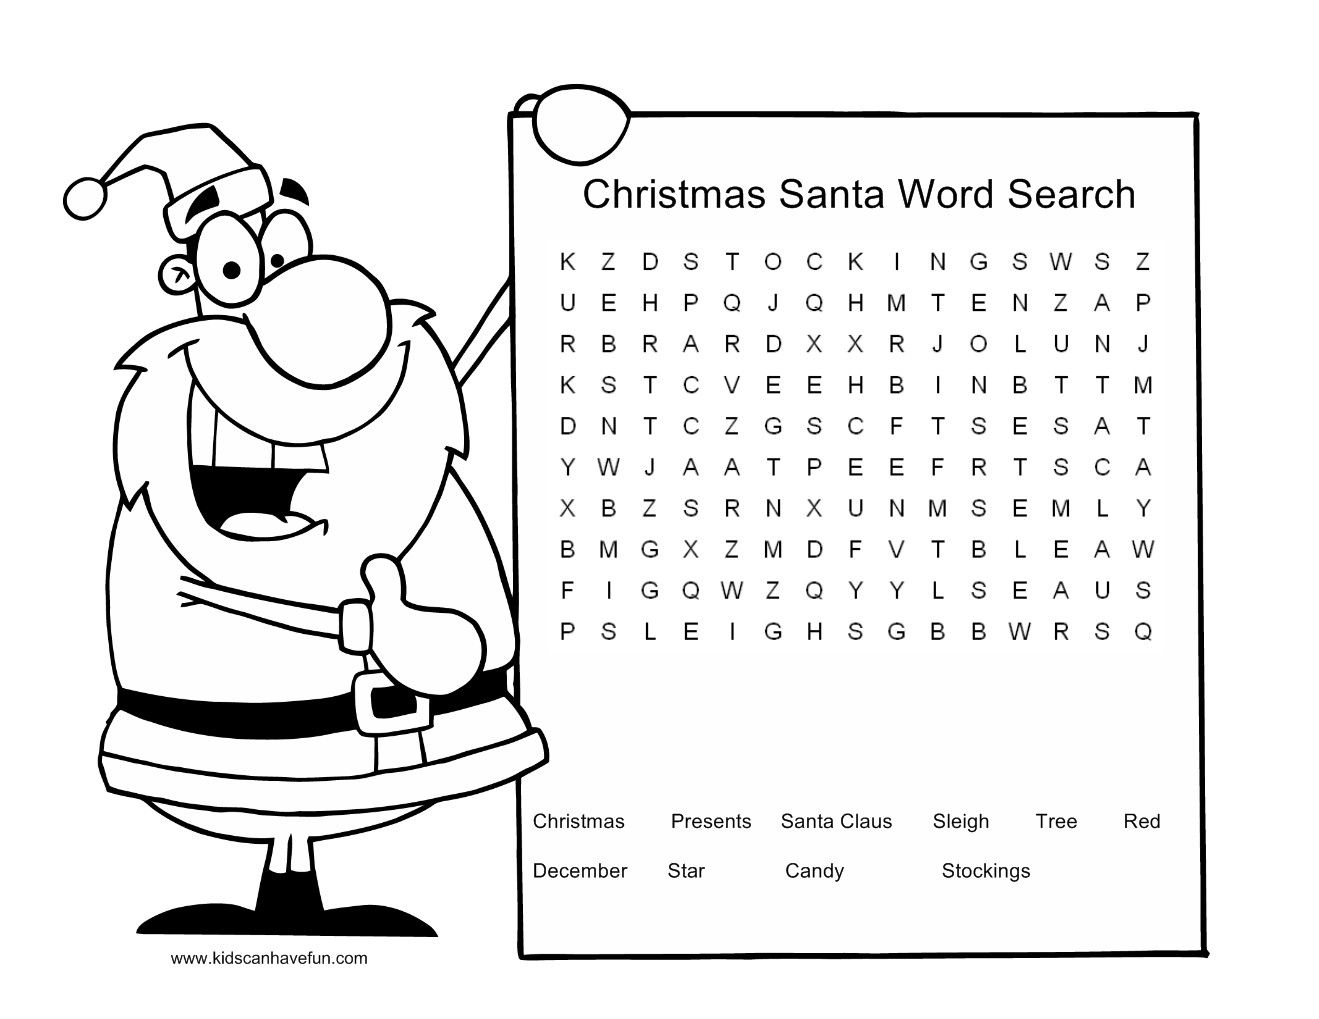 worksheet Christmas Printable Worksheets christmas word search printable worksheets resources worksheets